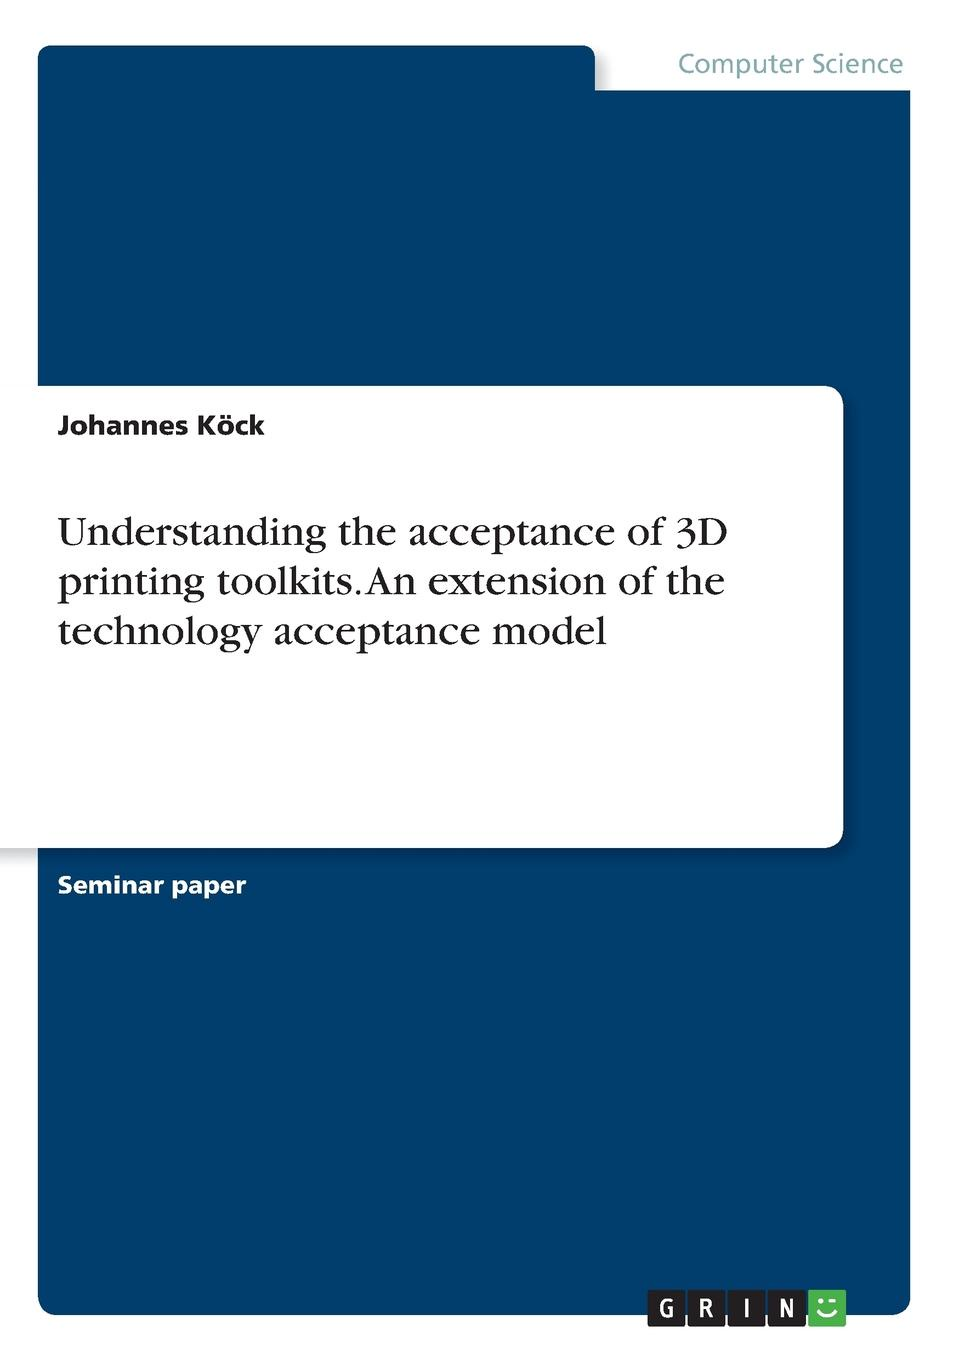 Johannes Köck Understanding the acceptance of 3D printing toolkits. An extension of the technology acceptance model uv spot printing on single side of paper business cards the item is only for uv spot fee don t include the cost of paper